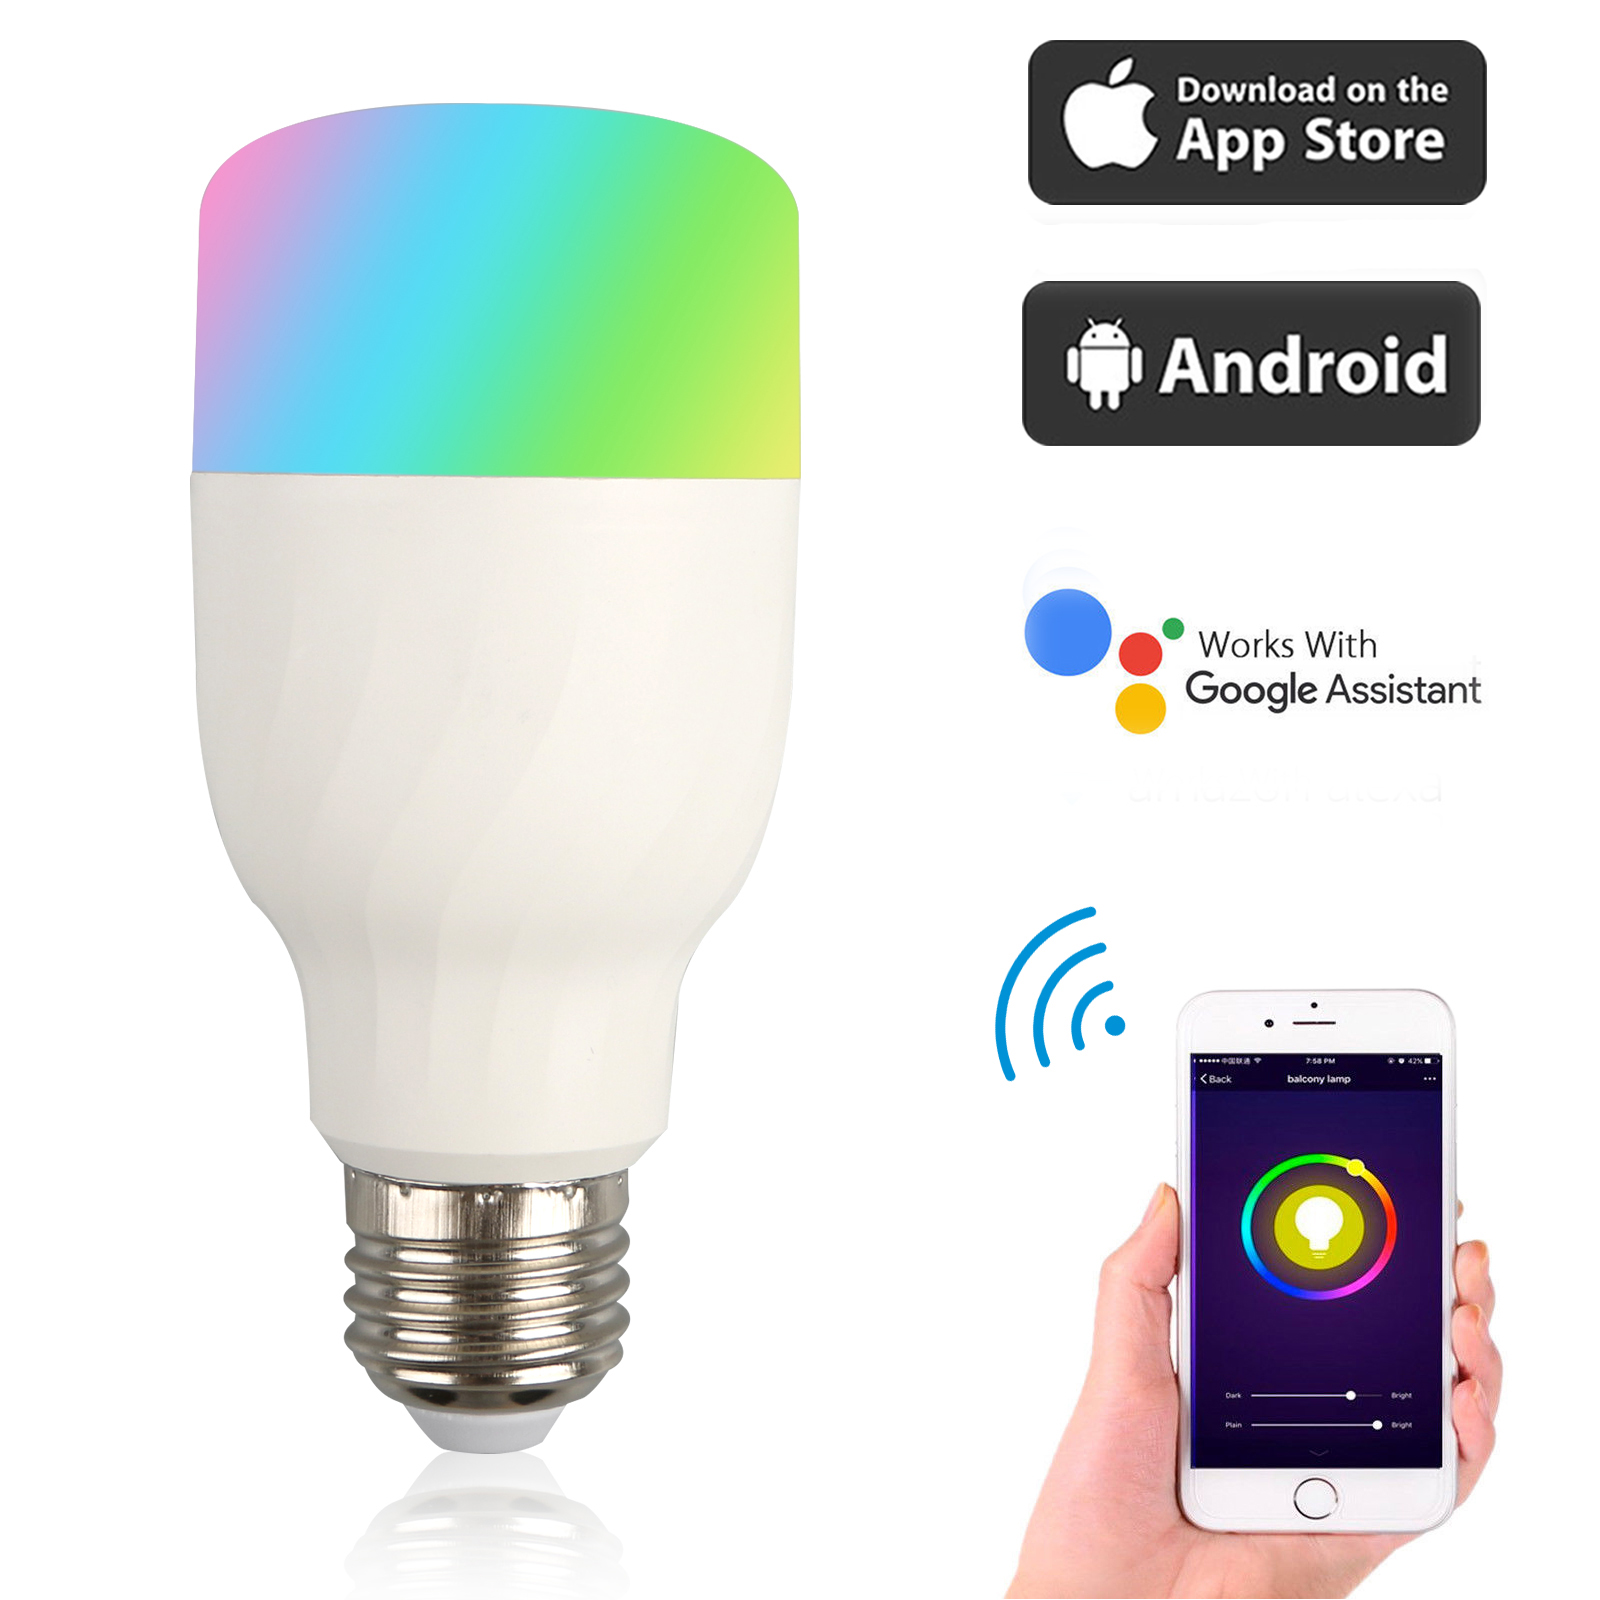 EEEKit WiFi Smart Light Bulb, (1/2-Pack) WiFi Remote Control Smart LED Bulb E27 B22 RGB Light Controled by iPhone Smartphone iOS & Android Google Assistant